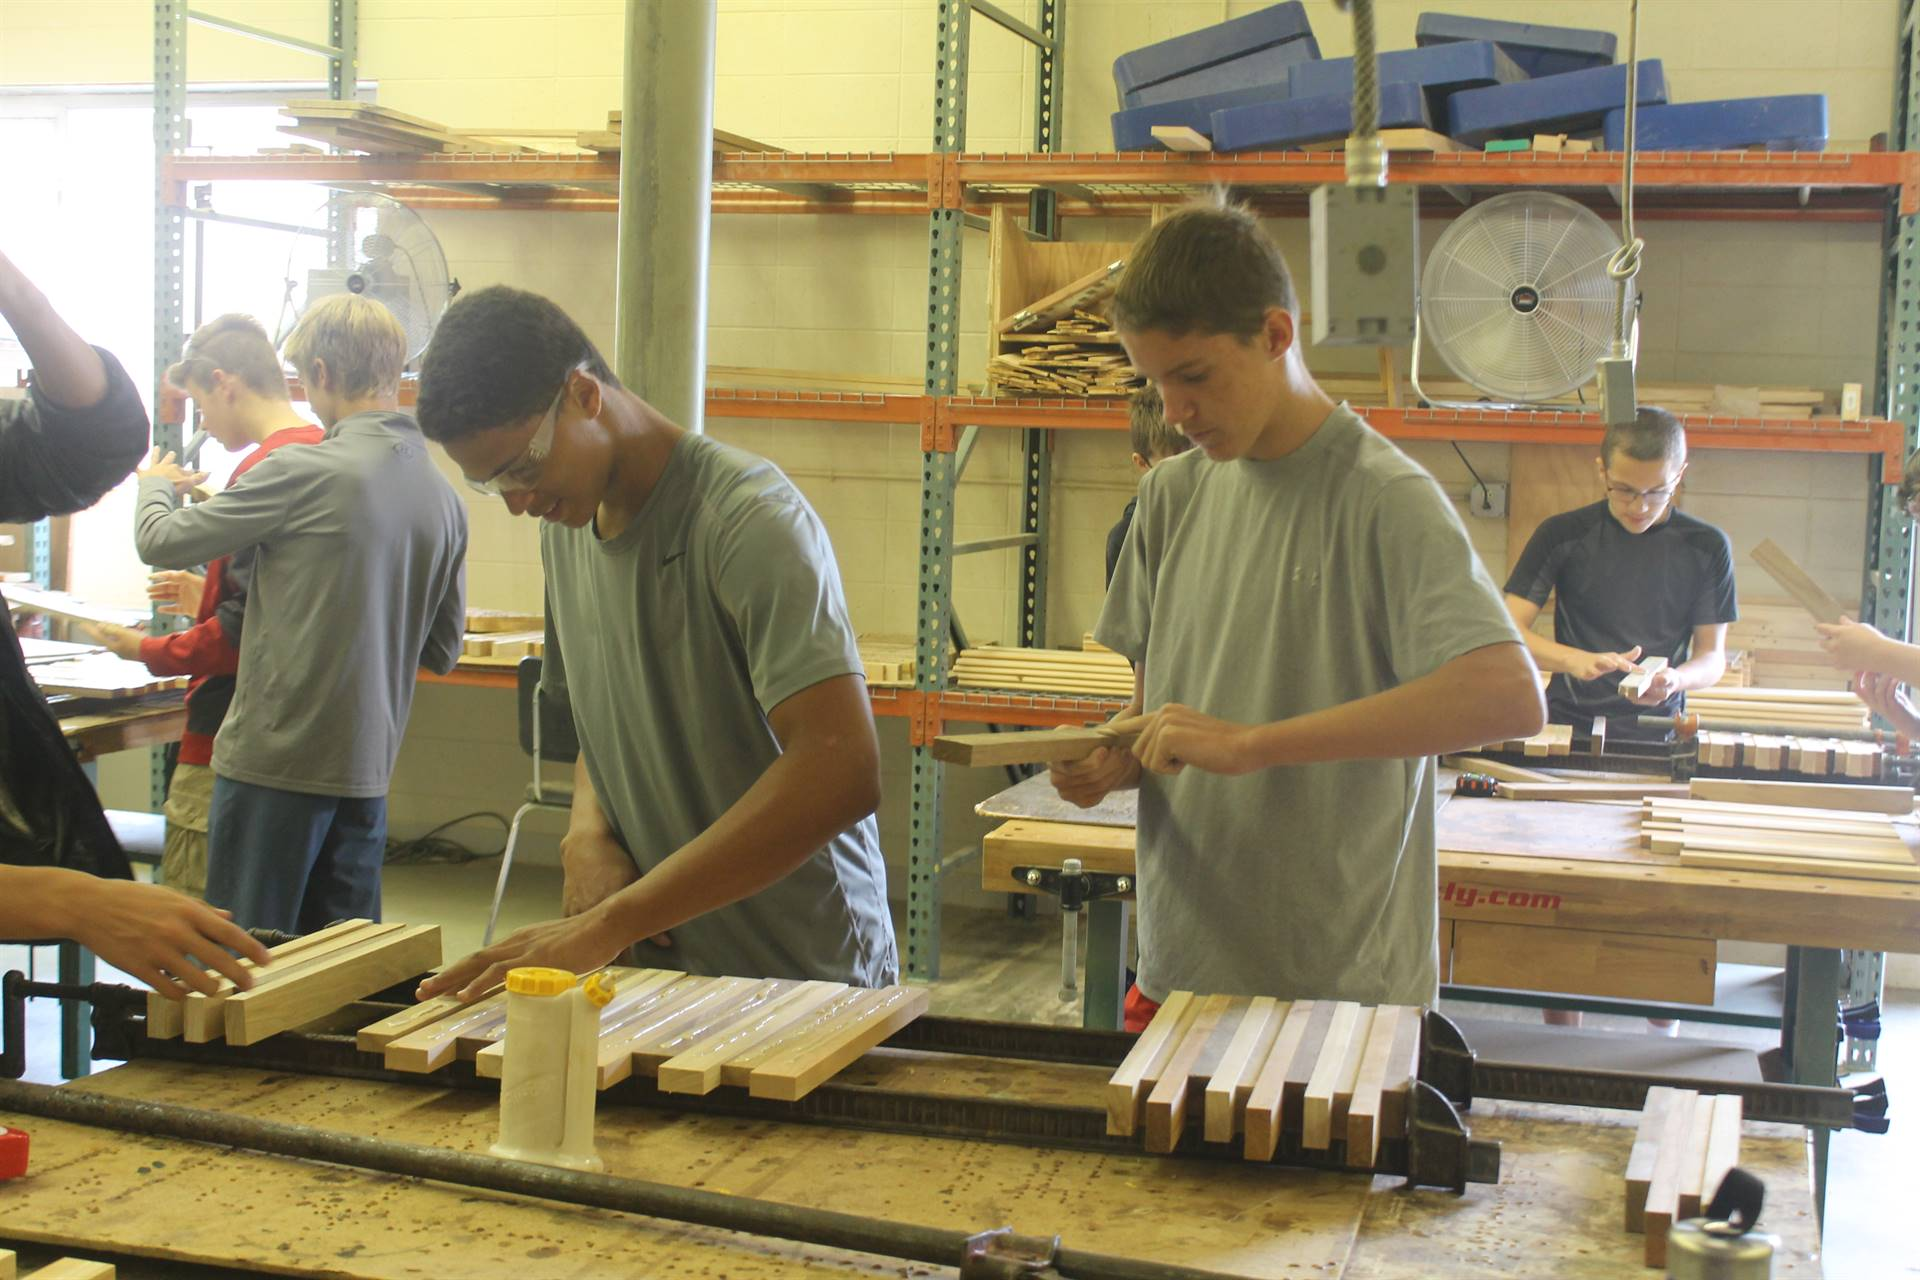 Vocational Manufacturing students working in class